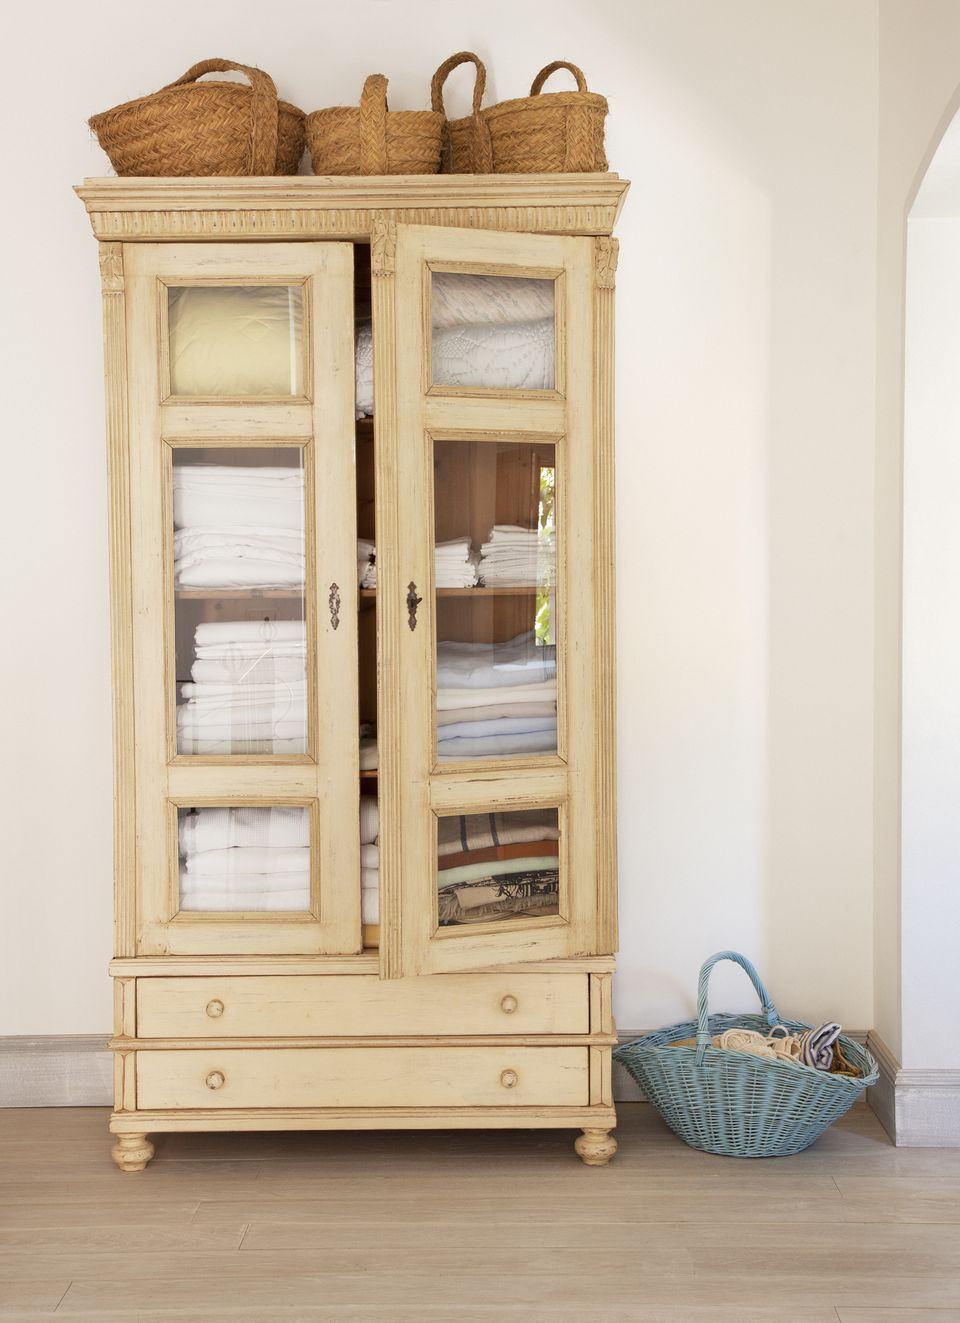 Use Vertical Storage Space